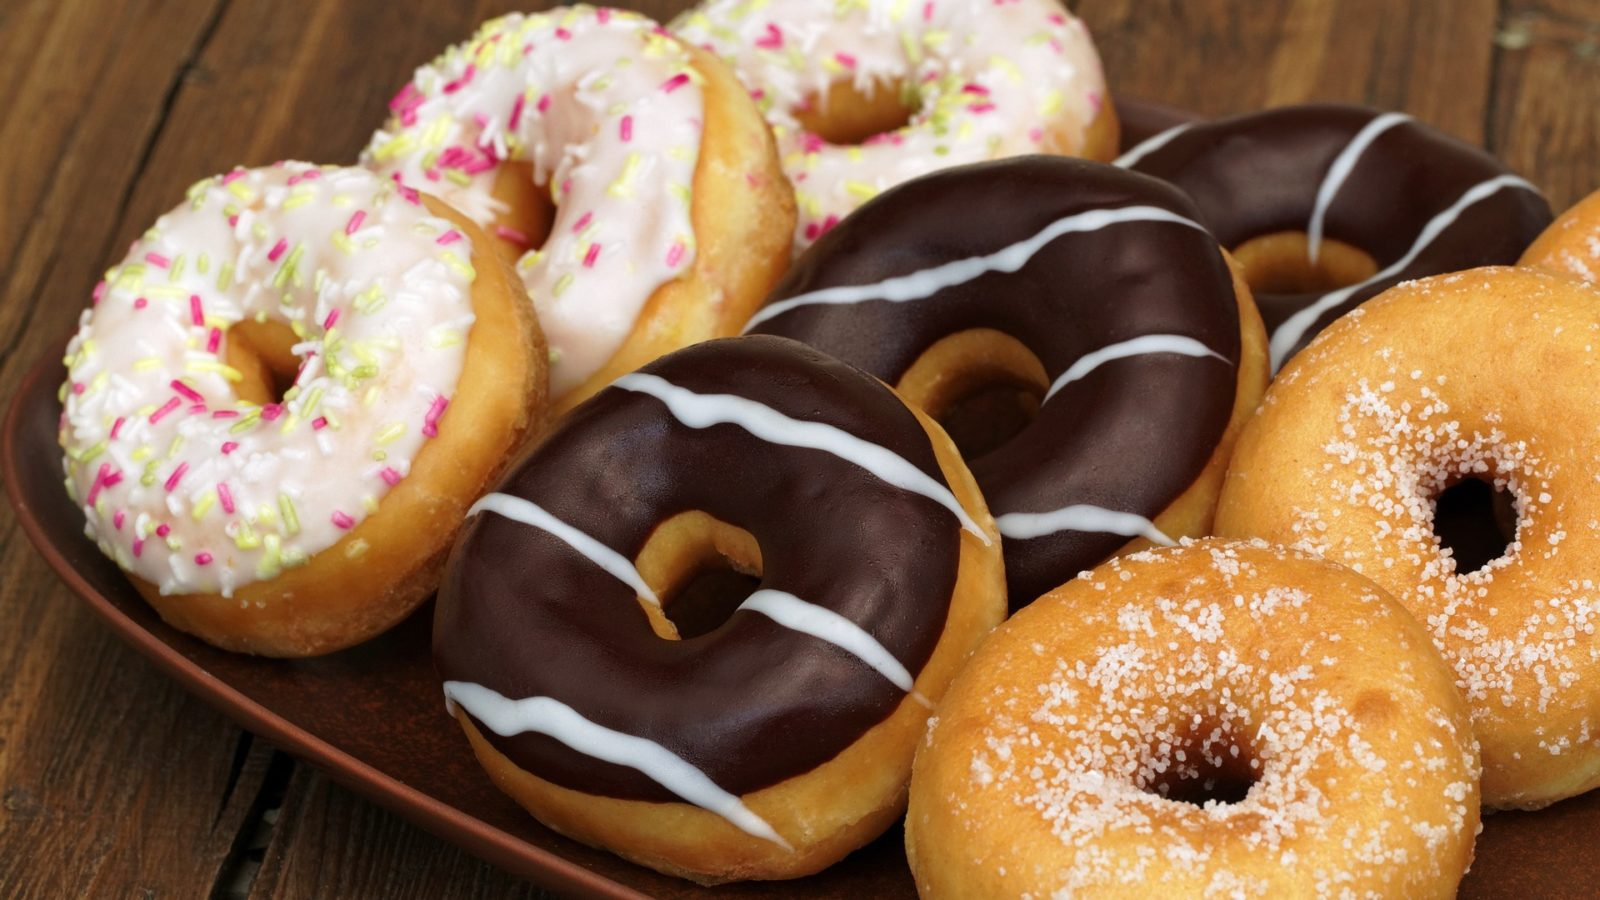 Gorge on the best doughnuts in Hong Kong